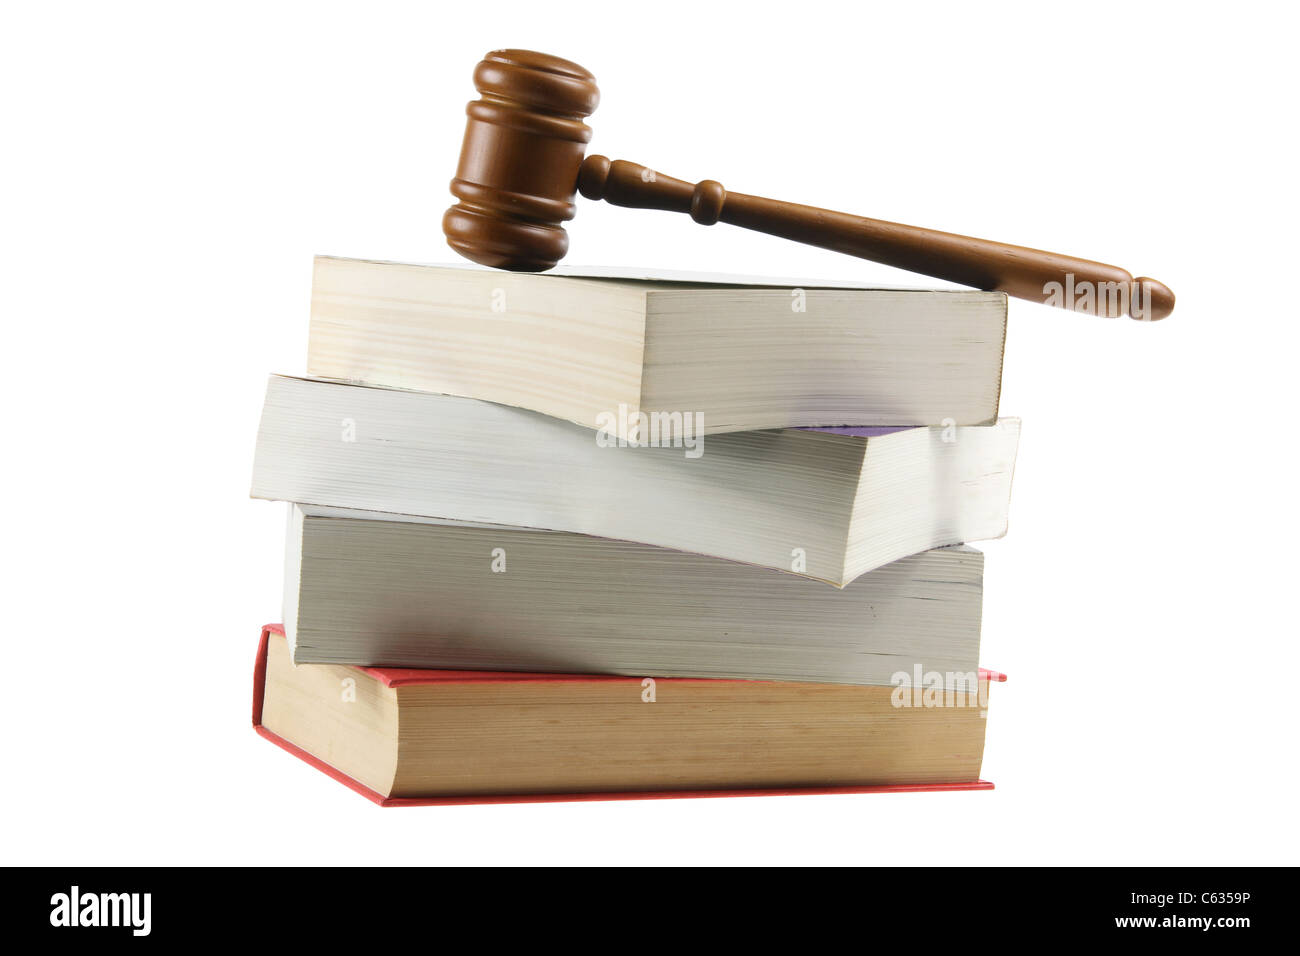 Gavel and Books - Stock Image